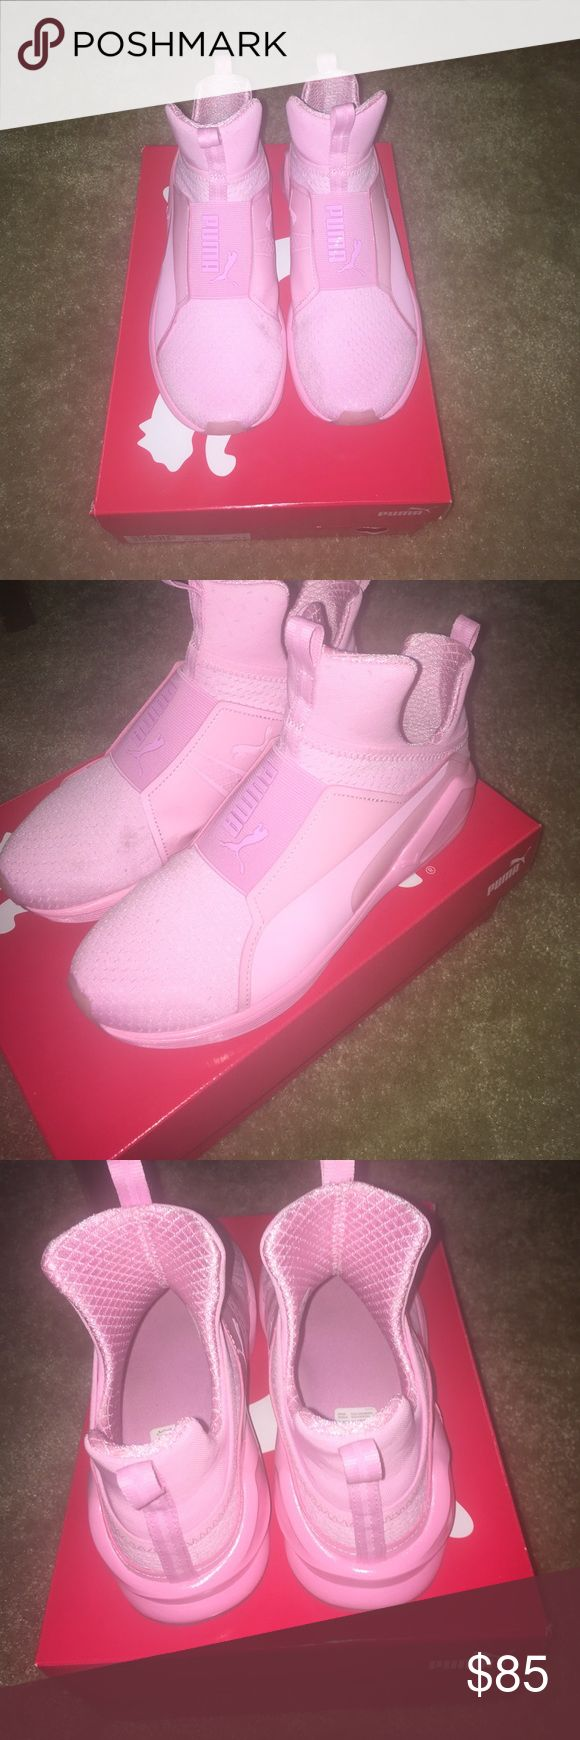 Pink puma fierce women Pink puma fierce Tennis shoes women's sz 8. They have been worn twice so they are not in the most perfect condition. Comes with box Puma Shoes Sneakers